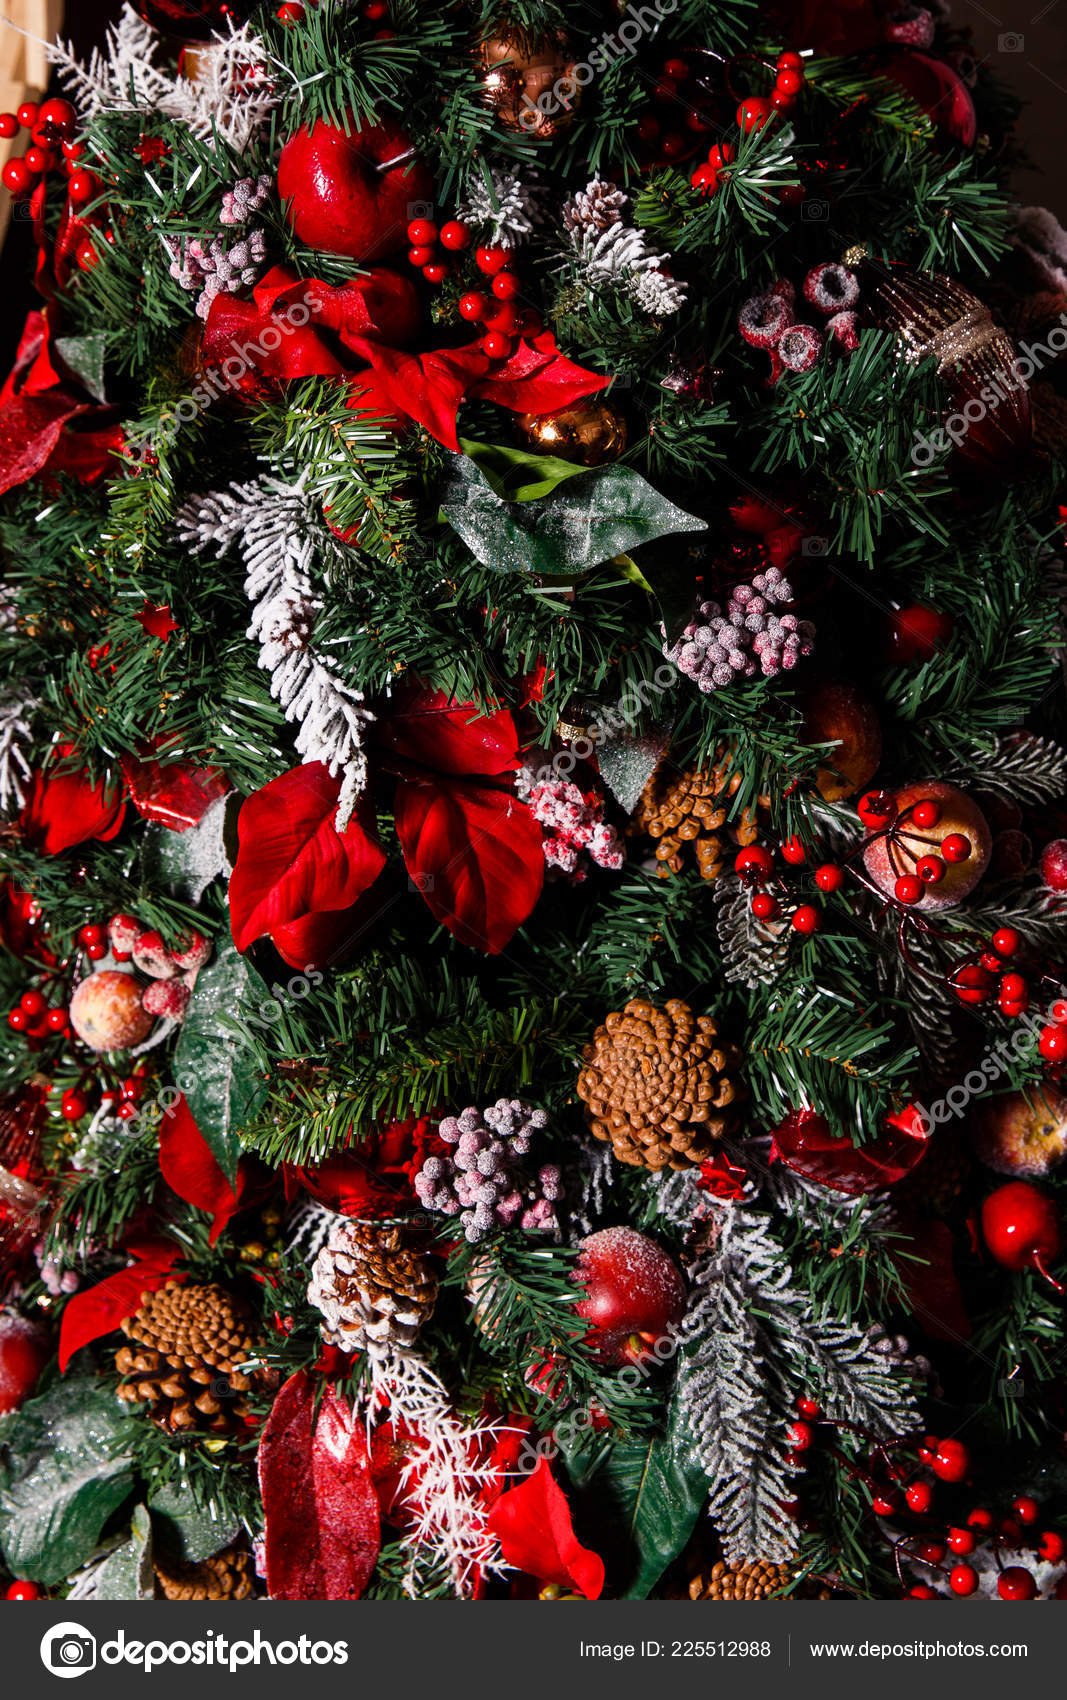 Albero Con Bacche Rosse photo of decorated christmas tree with cones, red berries